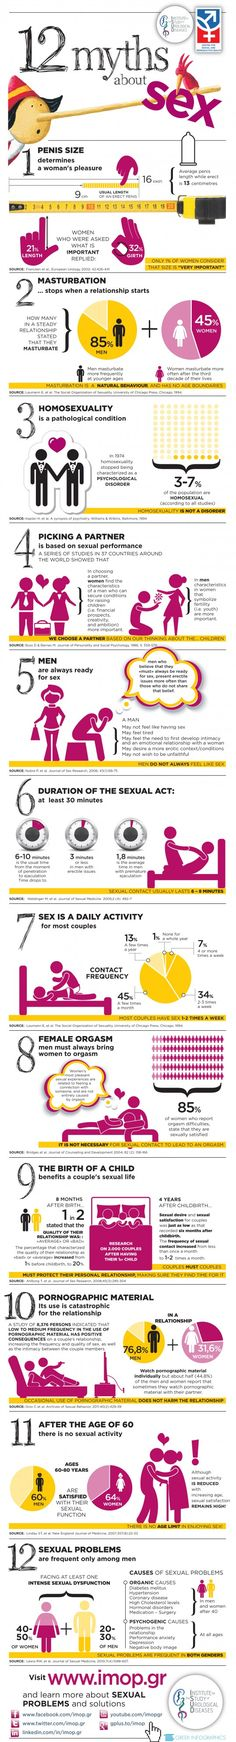 Green Yatra Blog – 12 Myths About Sex {Infographic}